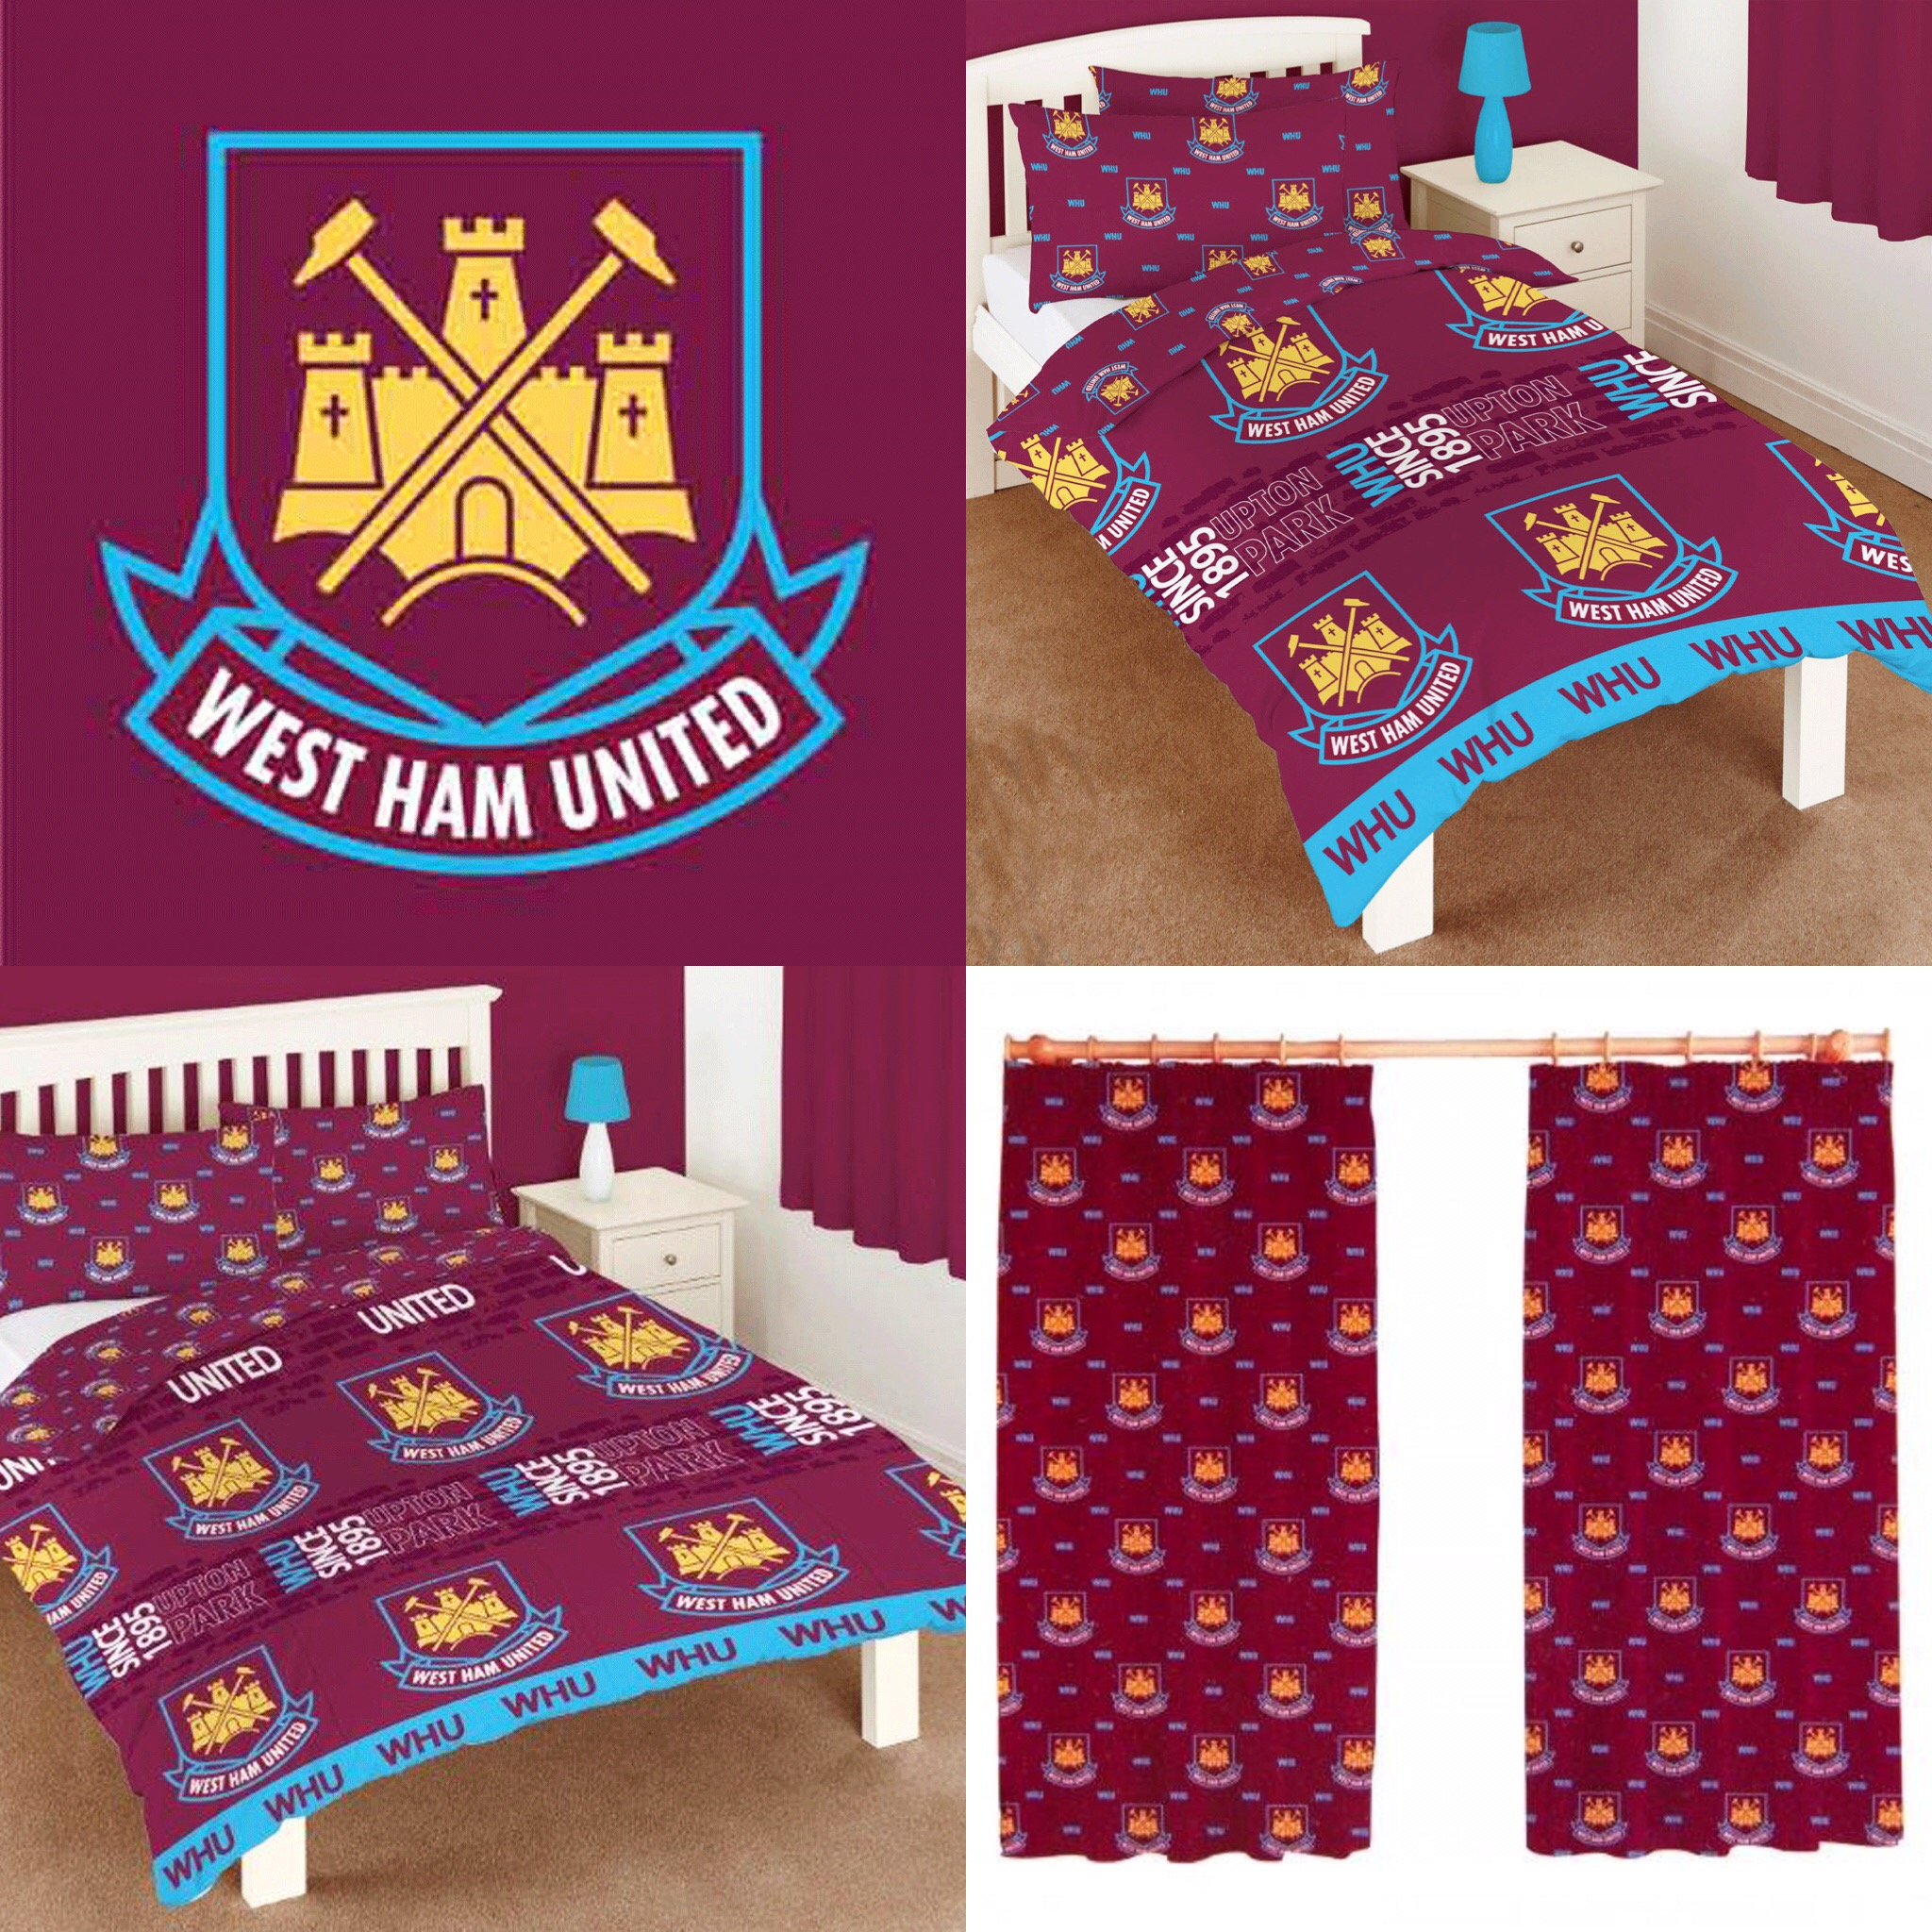 Details about WEST HAM UNITED F.C. FOOTBALL BEDROOM ACCESSORIES - Choose  One or More - BOYS